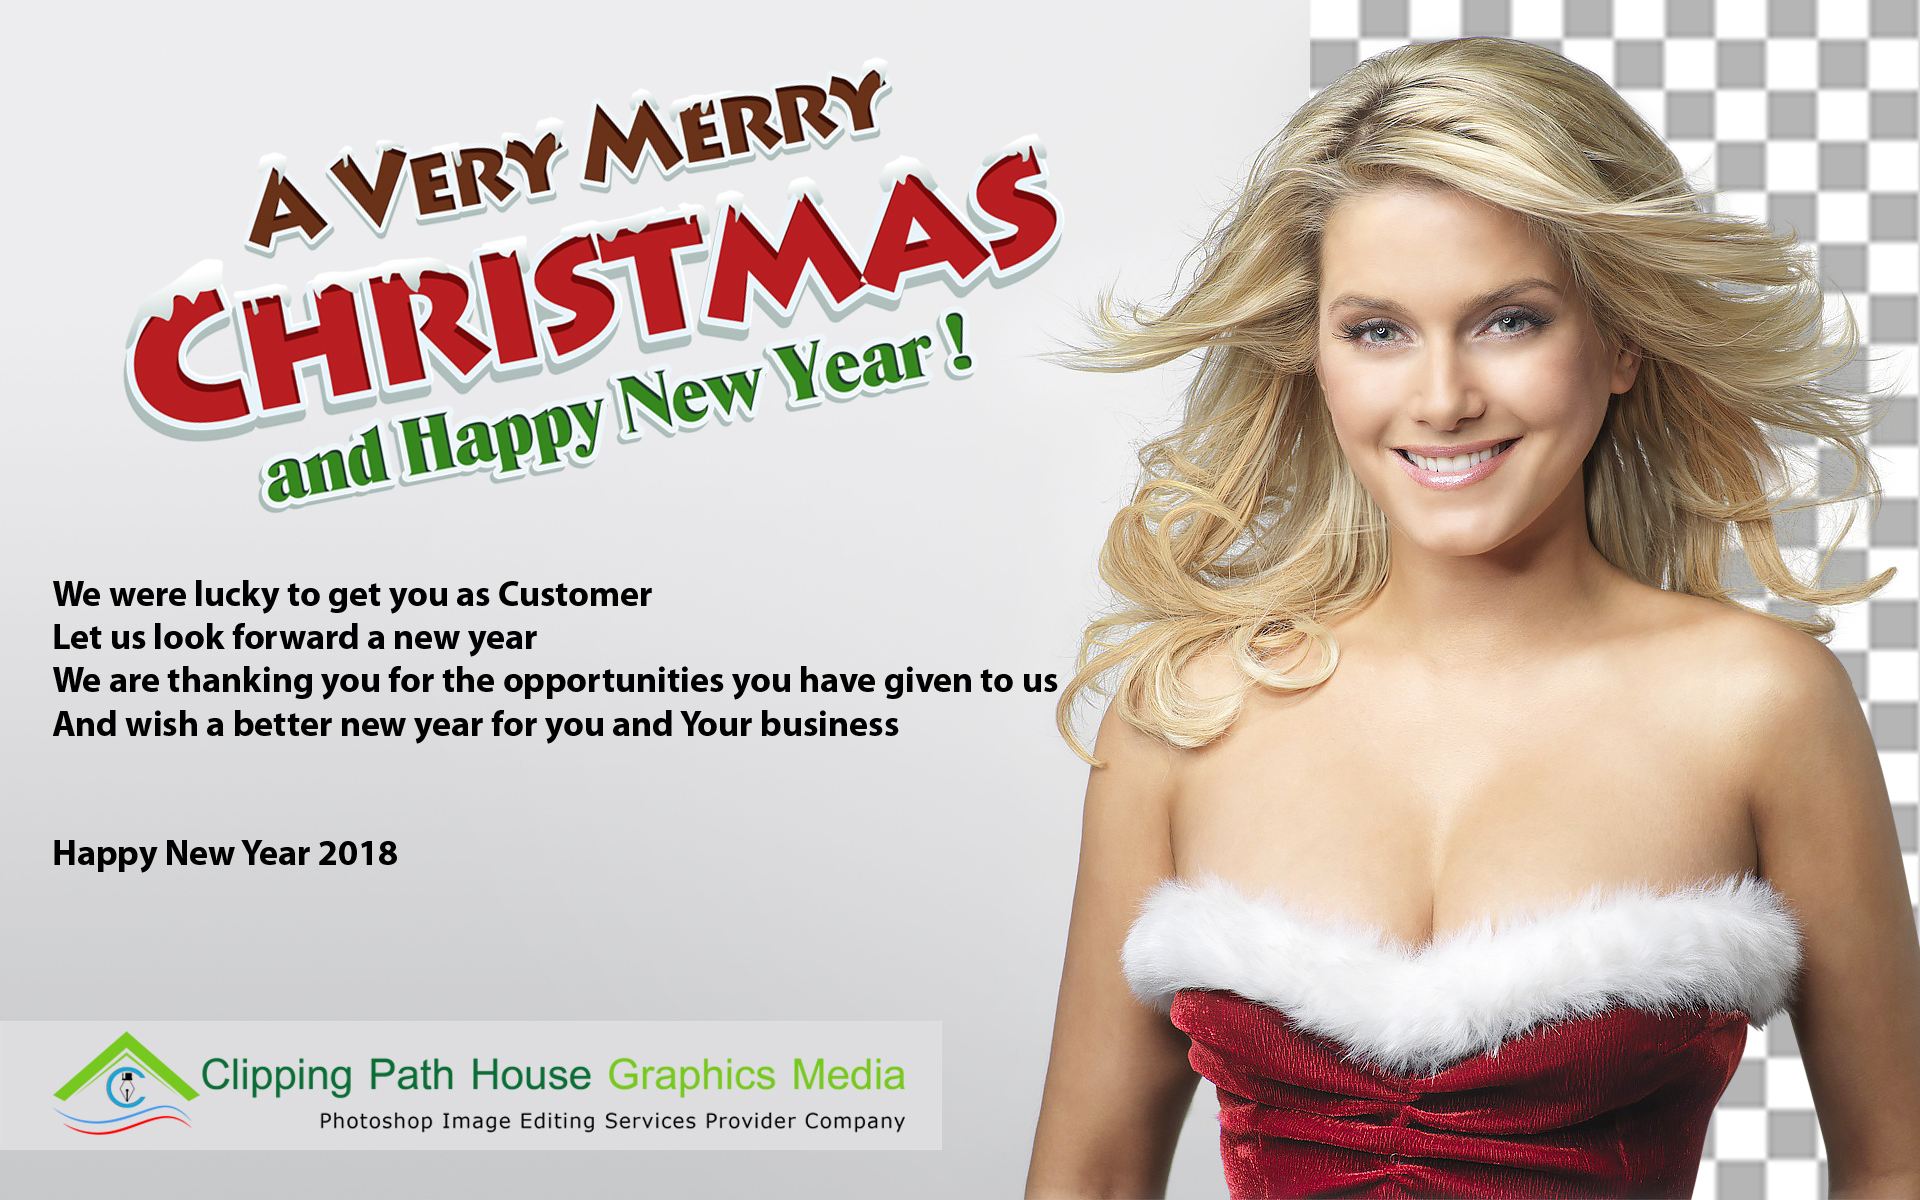 Happy New Year 2018, new year wish, clipping path house, cph graphics,